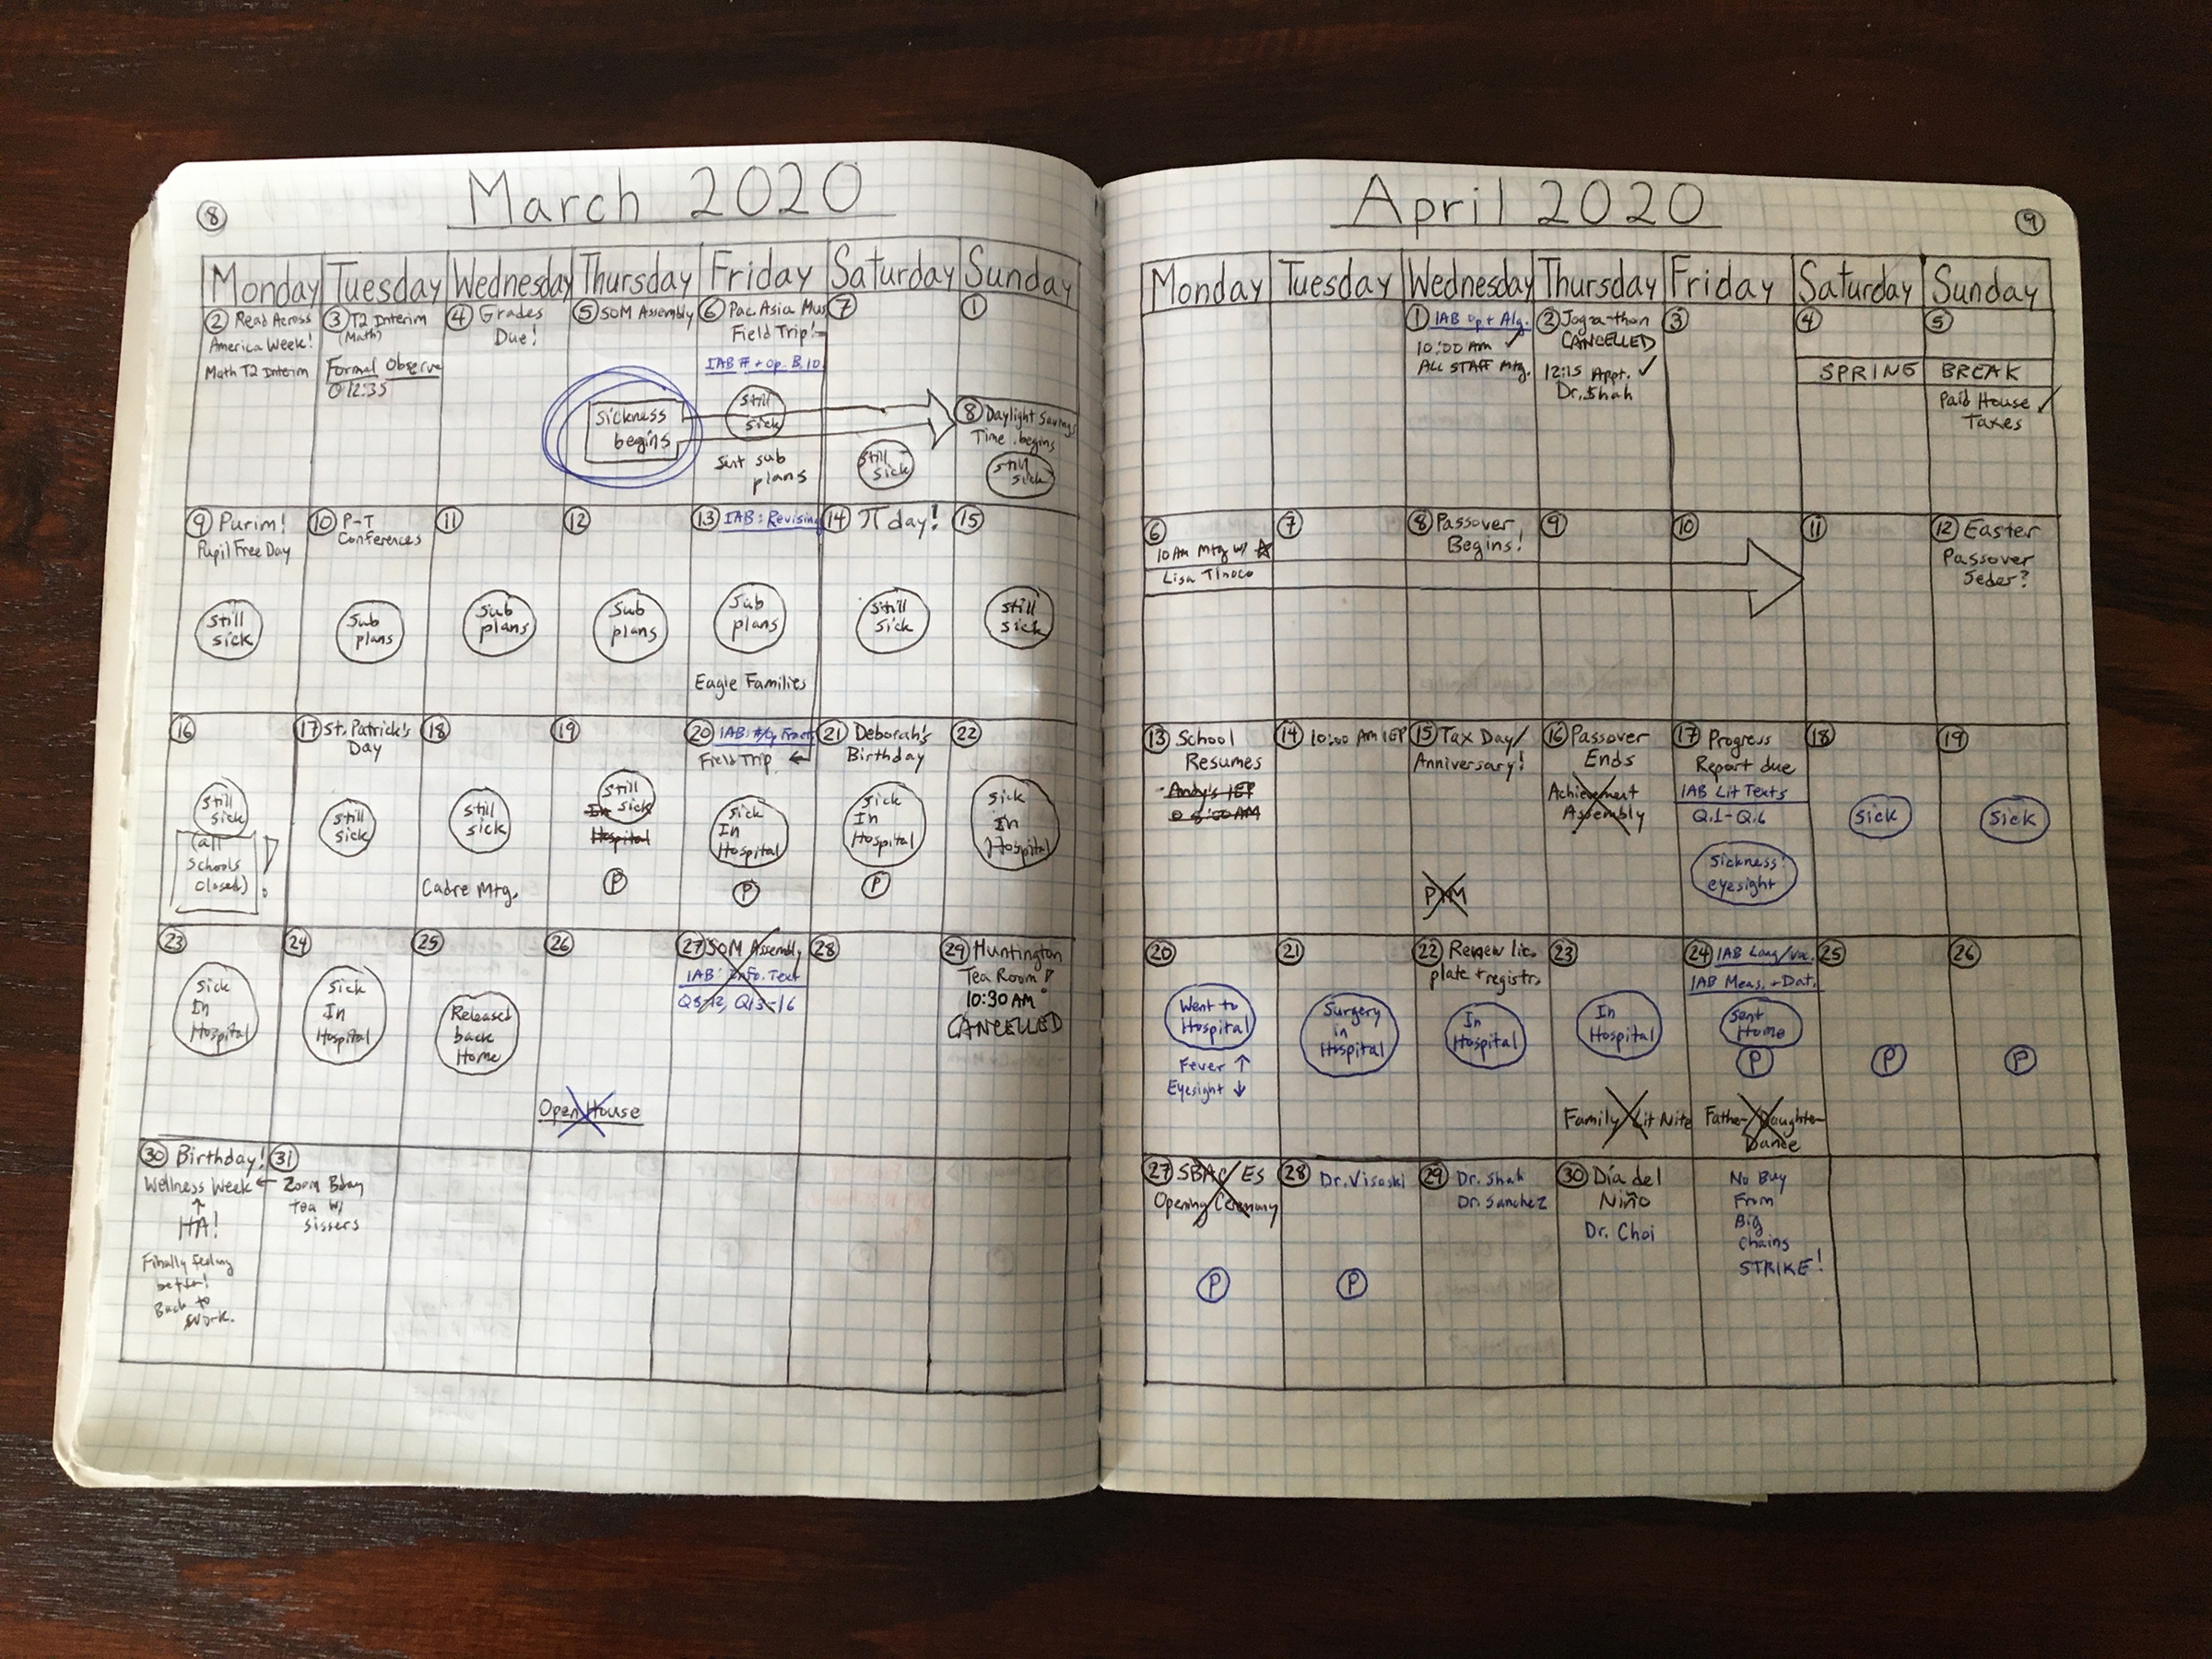 Bullet journal created and submitted by Tanya Gibb to the Autry.  On March 5th, 2020, I came down with COVID-19 symptoms. When I went to the hospital, I could not get a test. After going back to the ER three times, I was eventually hospitalized. I was still not tested,  she said.